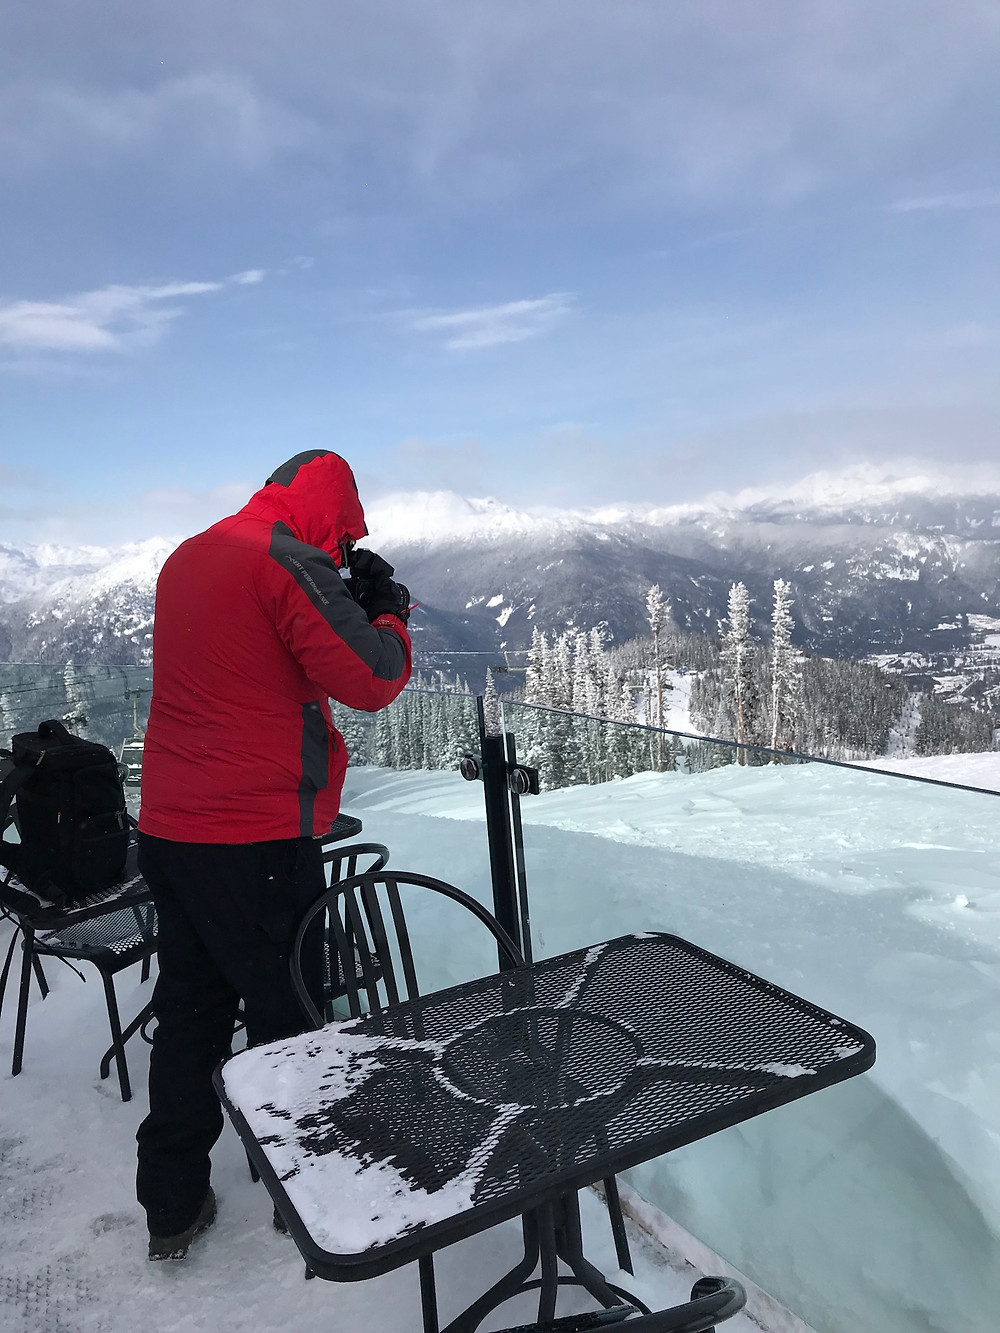 David Neve at the top of Whistler Mountain taking a picture during -32 degress Centigrade weather, even though it was sunny.